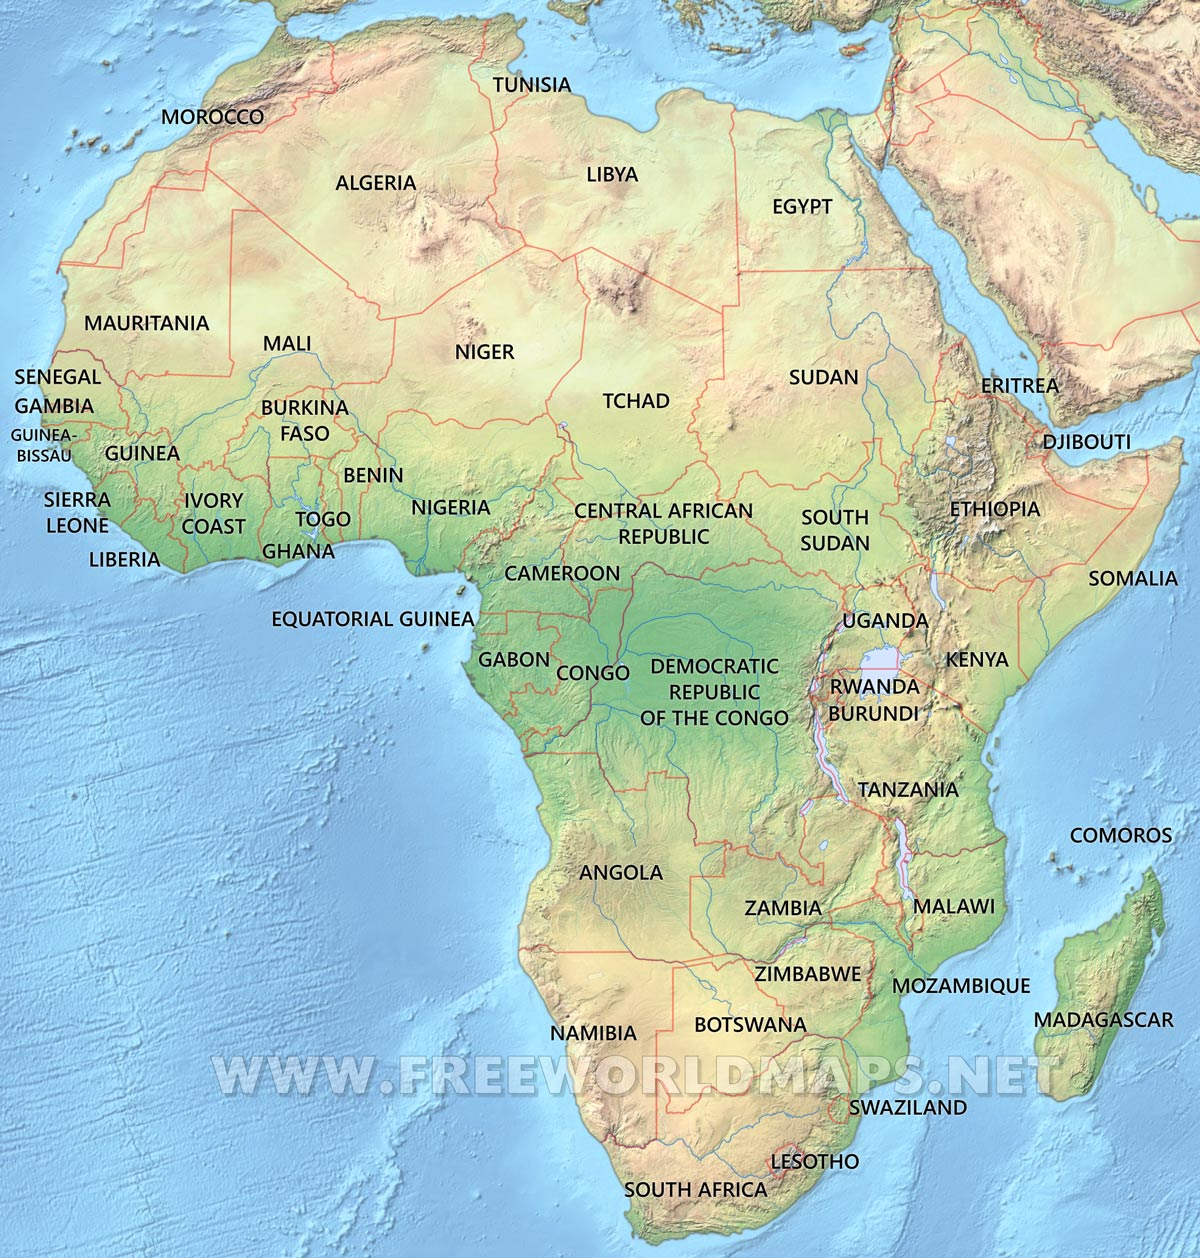 Africa Physical Map Freeworldmapsnet - Tunisia country political map